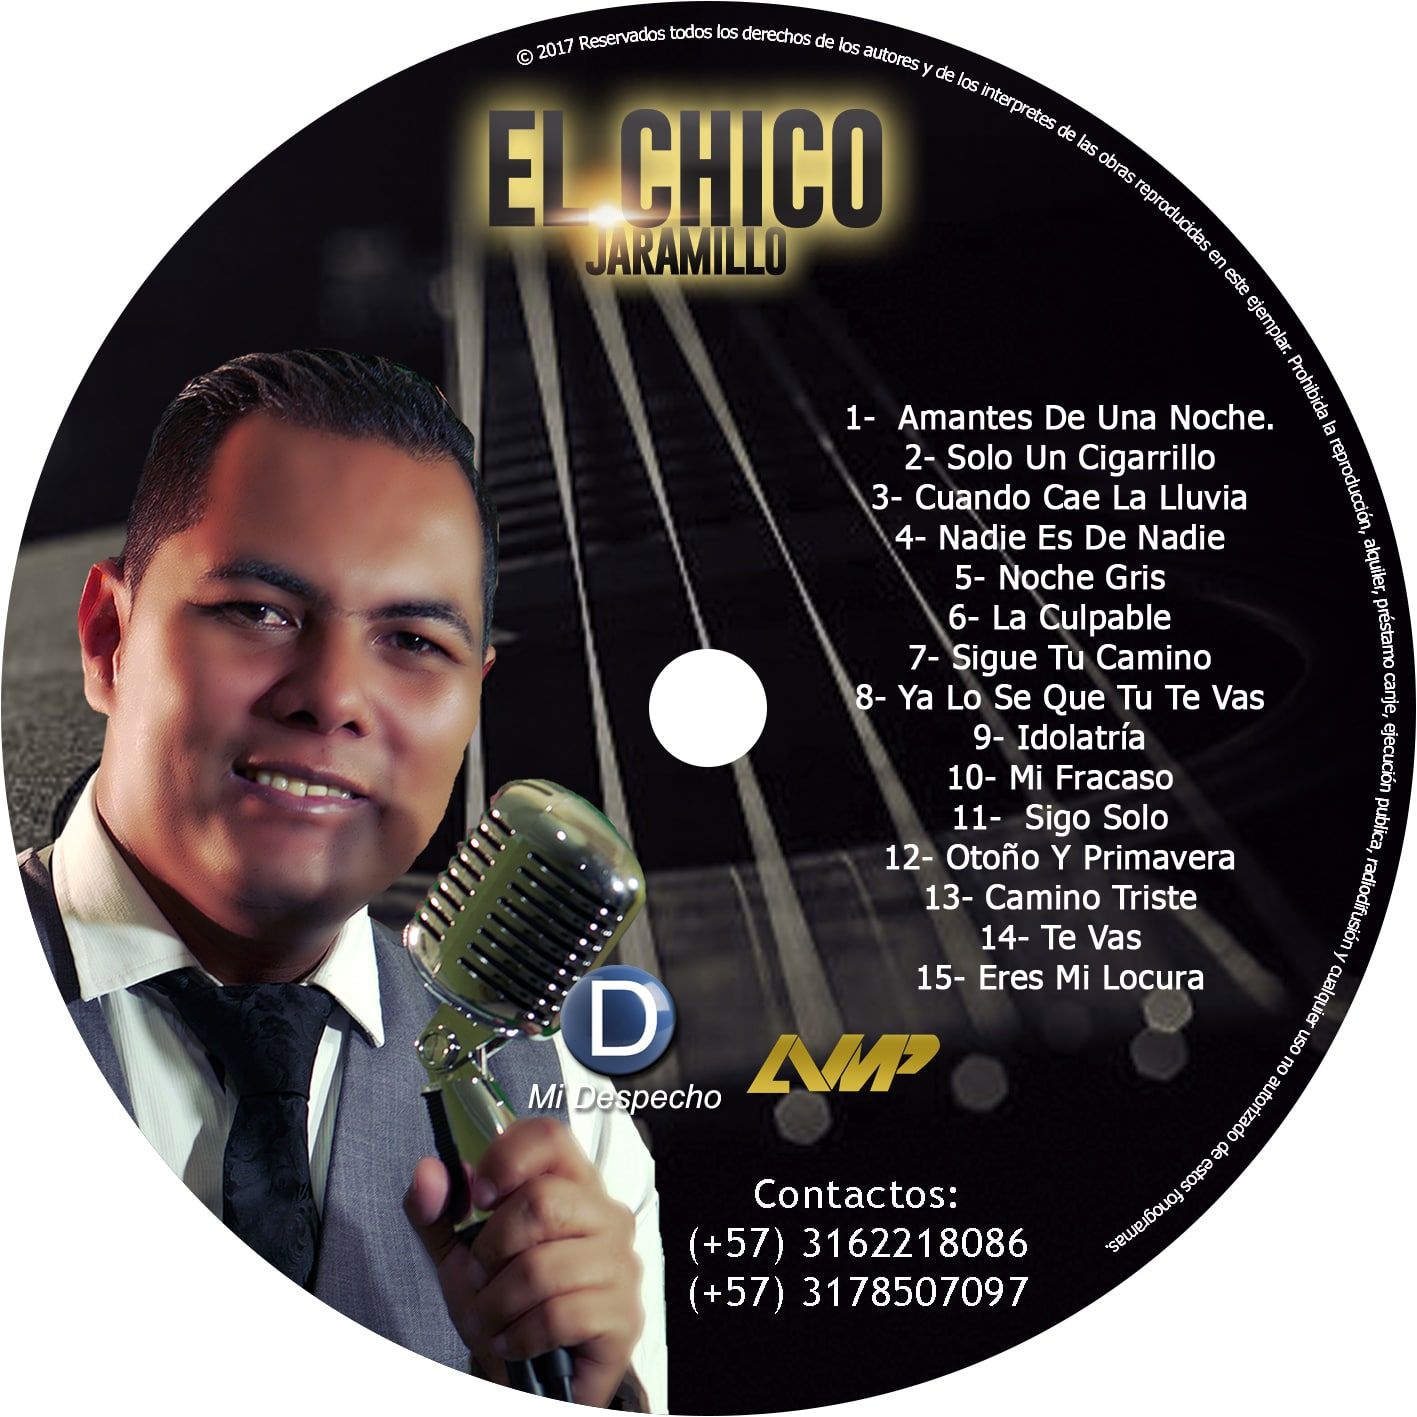 El Chico Jaramillo Cd